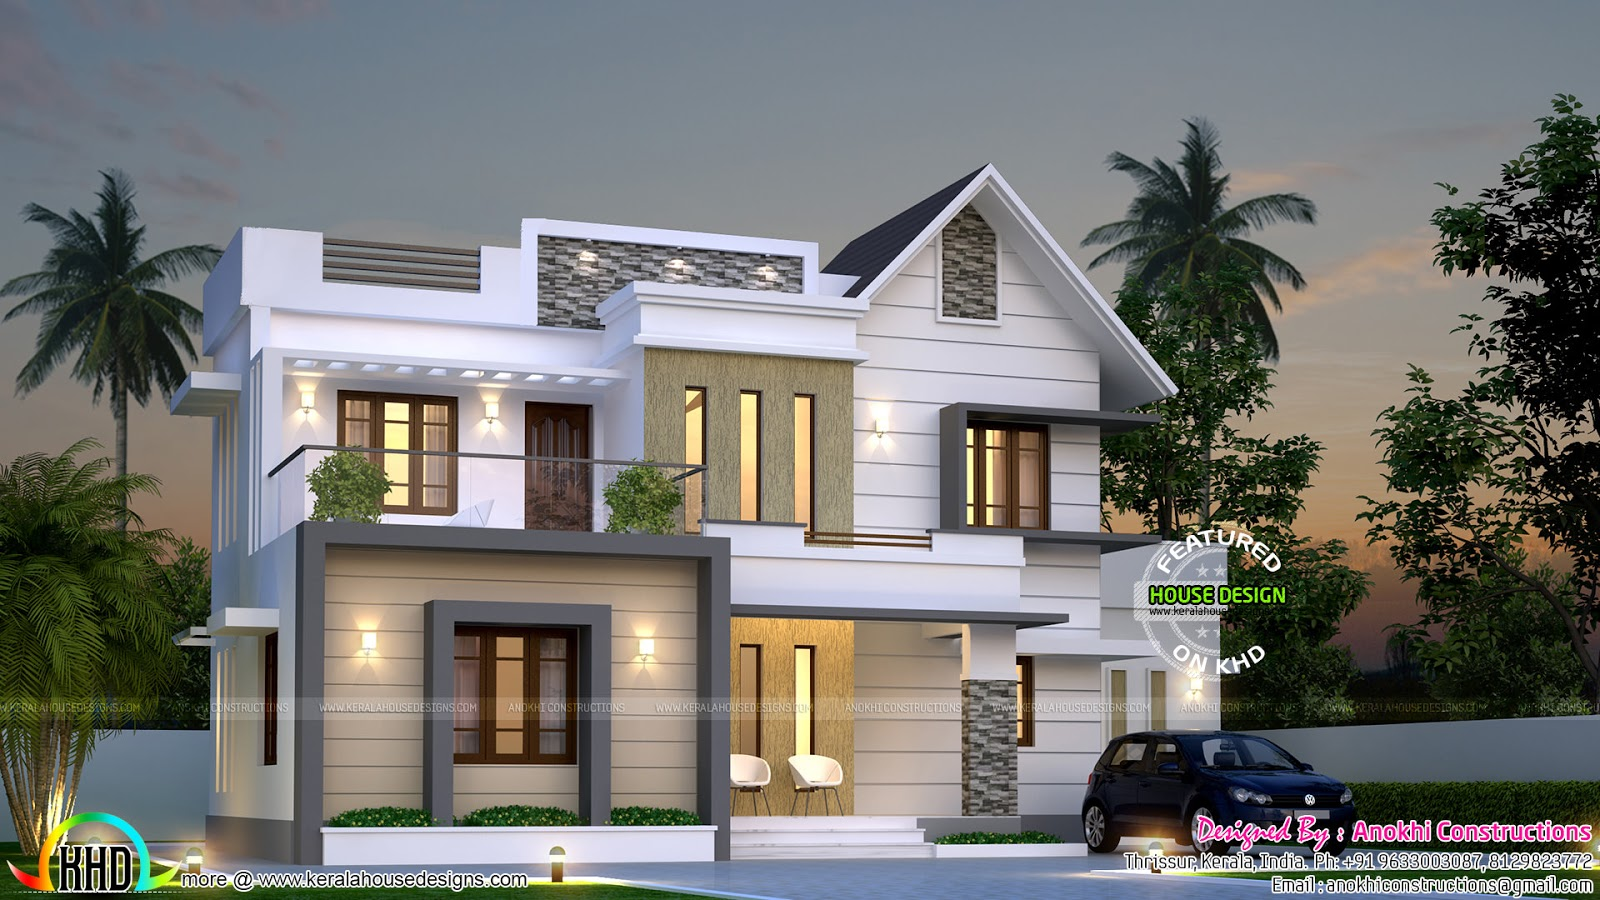 Simple and elegant villa kerala home design and floor plans for Simple kerala home designs